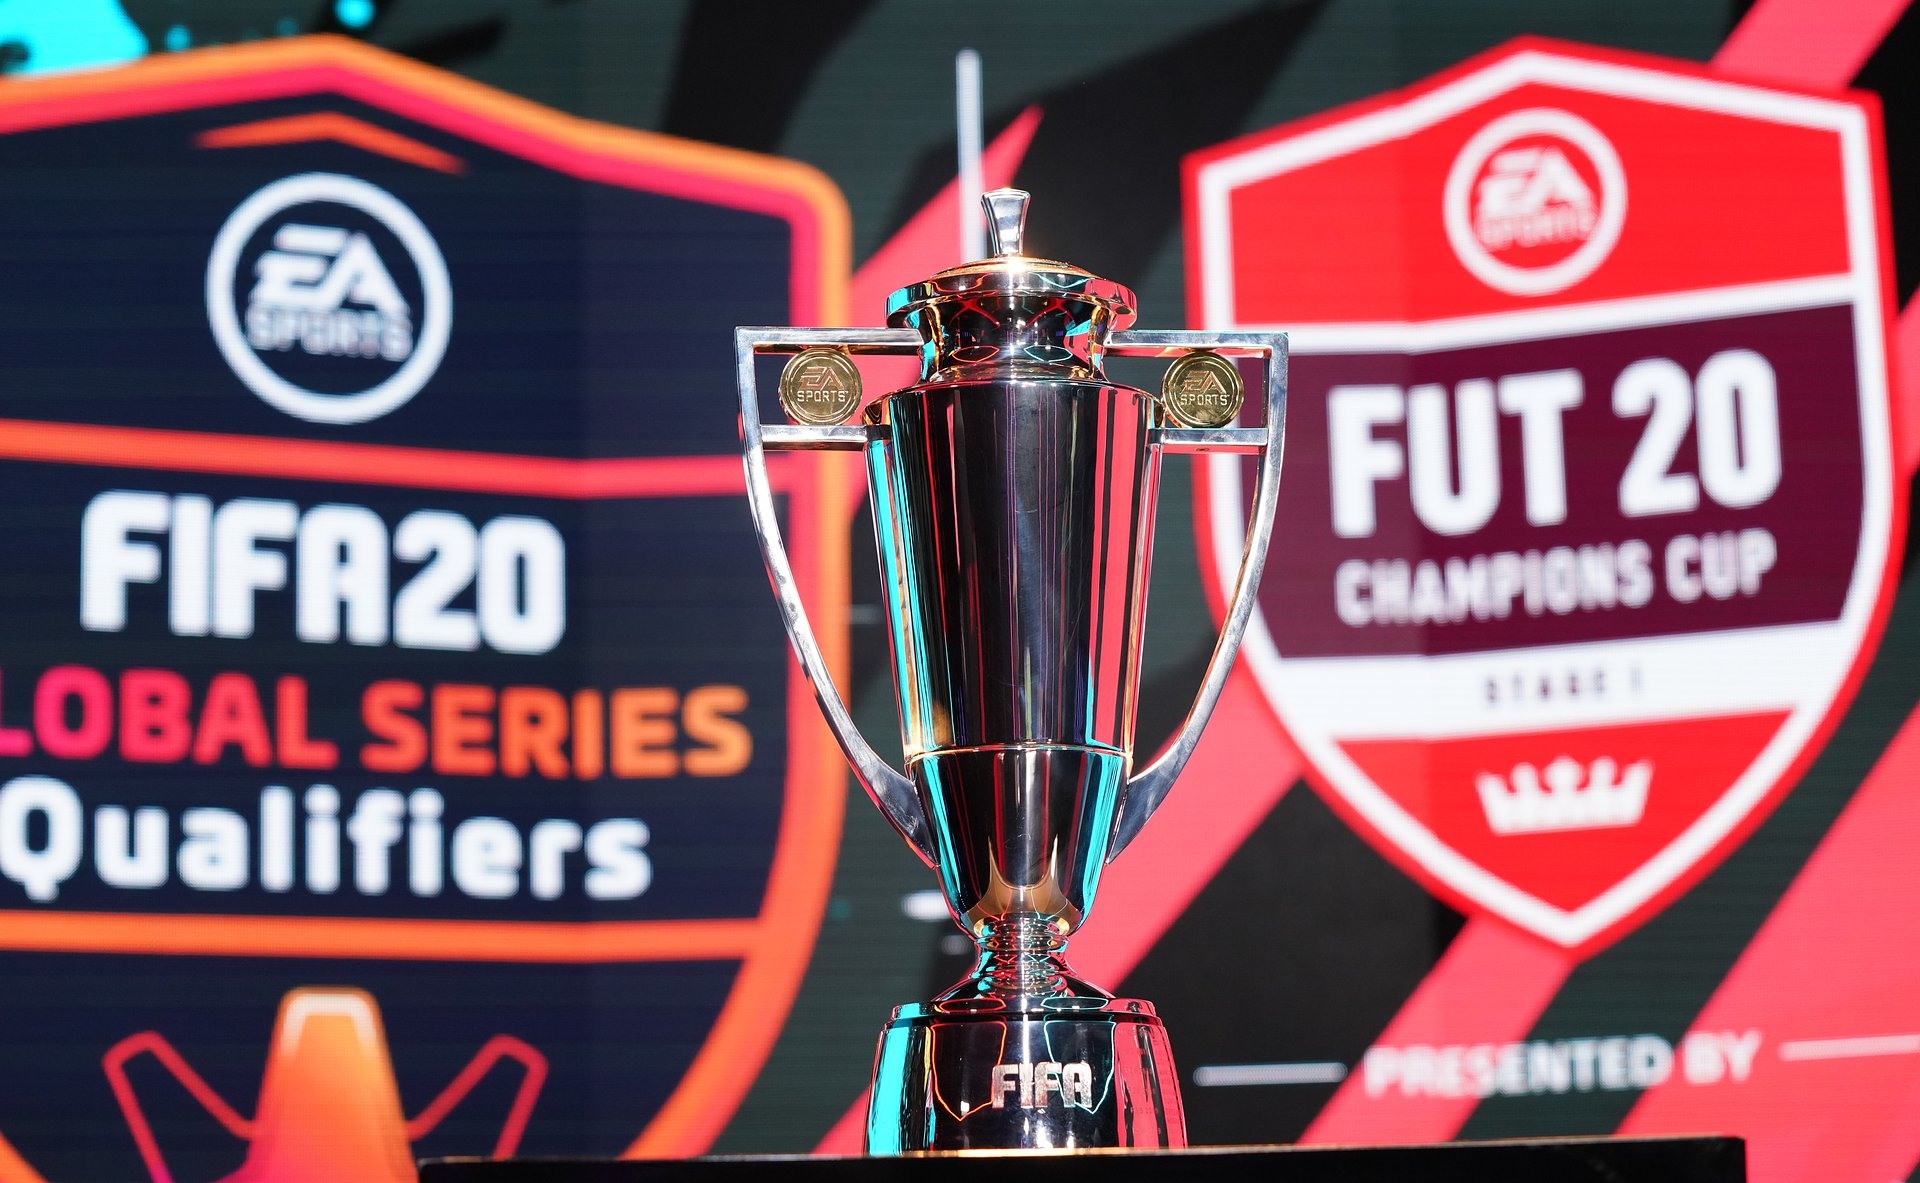 PGL will continue the collaboration with EA for FIFA 20 Global Series